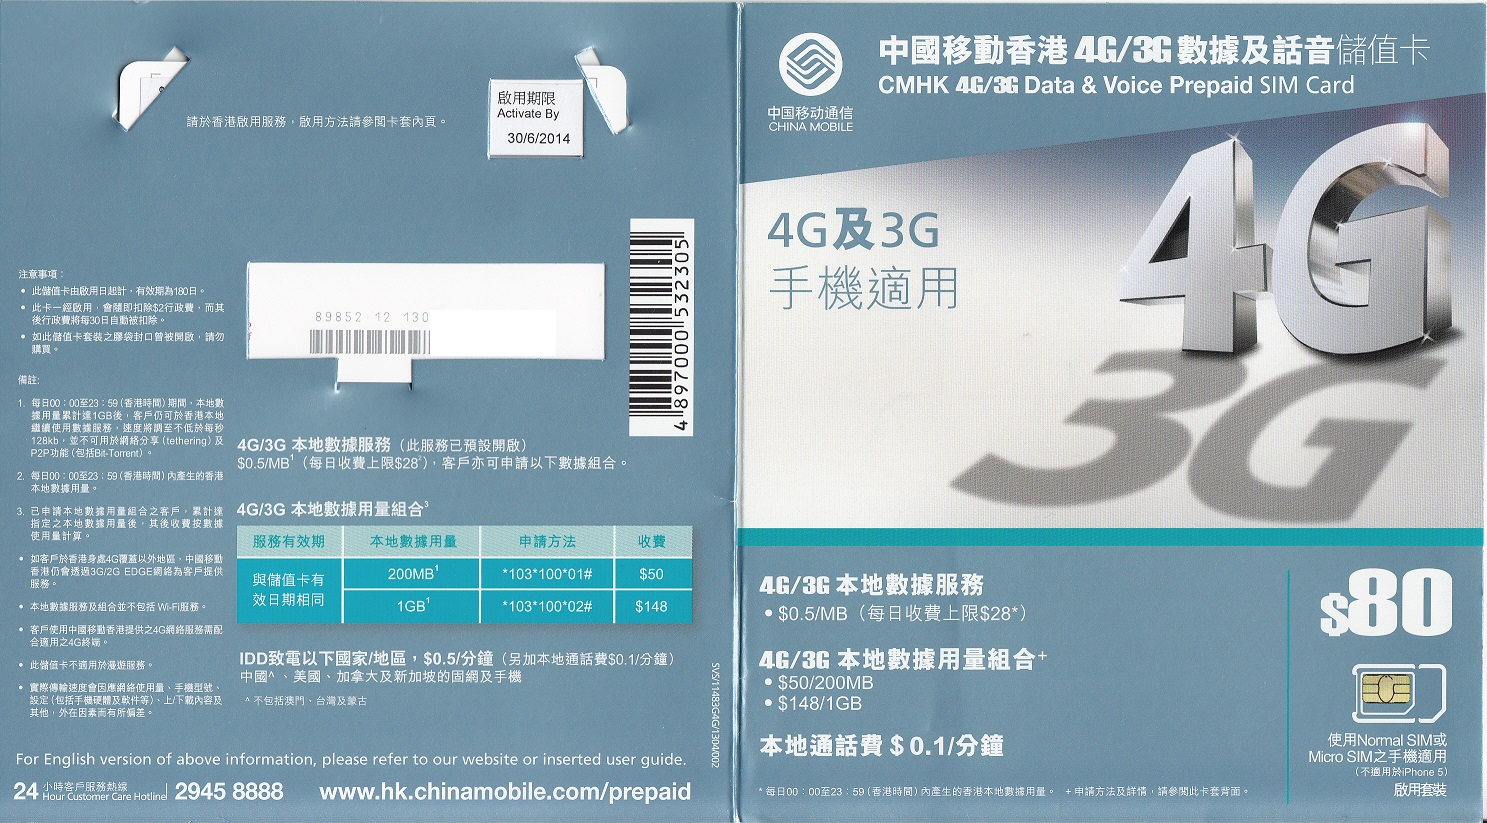 China Mobile Hong Kong 4G/3G Data & Voice Prepaid SIM Card